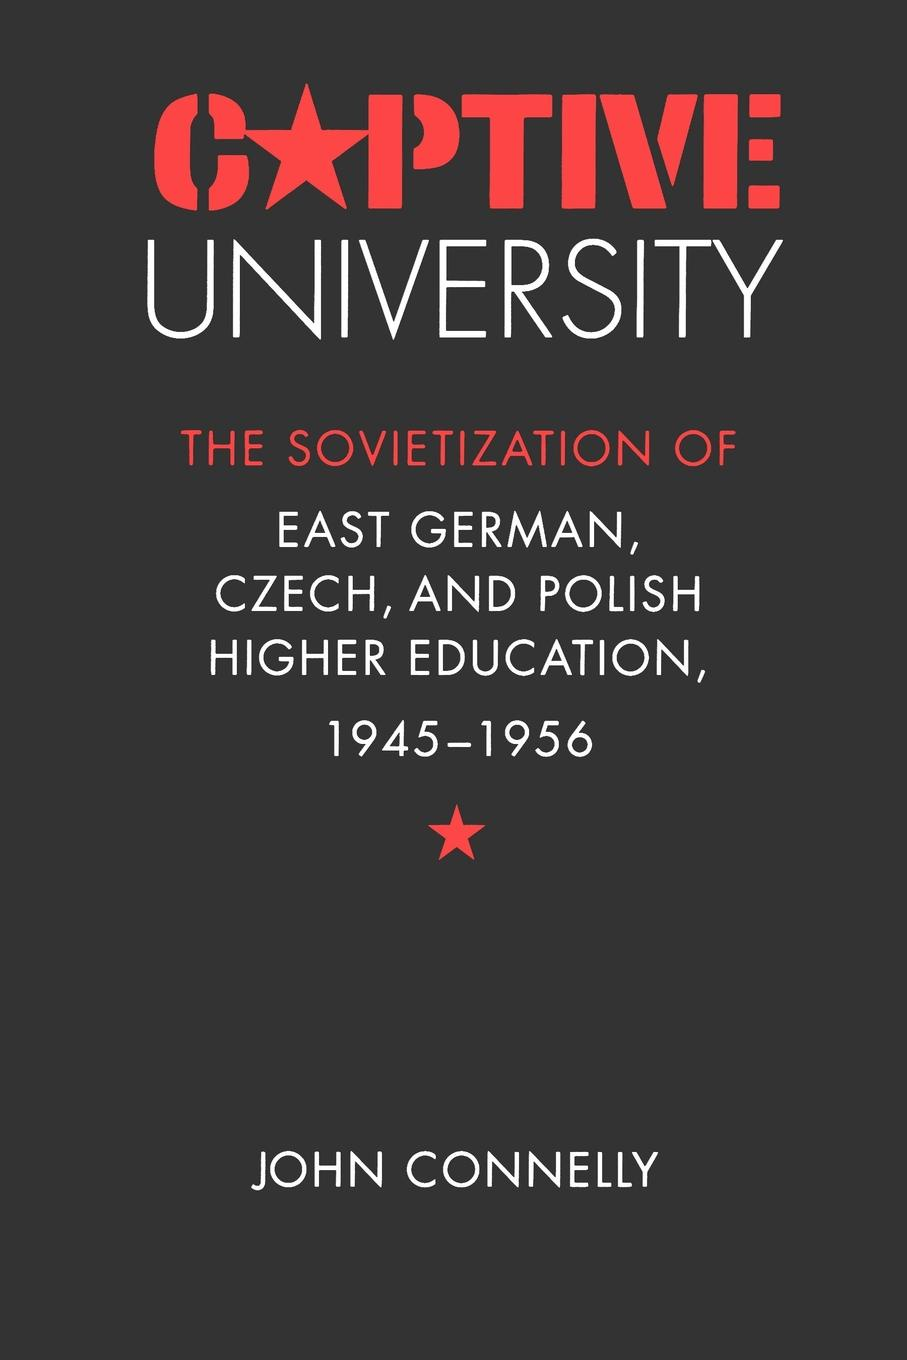 John Connelly Captive University. The Sovietization of East German, Czech, and Polish Higher Education, 1945-1956 andrew mcgettigan the great university gamble money markets and the future of higher education